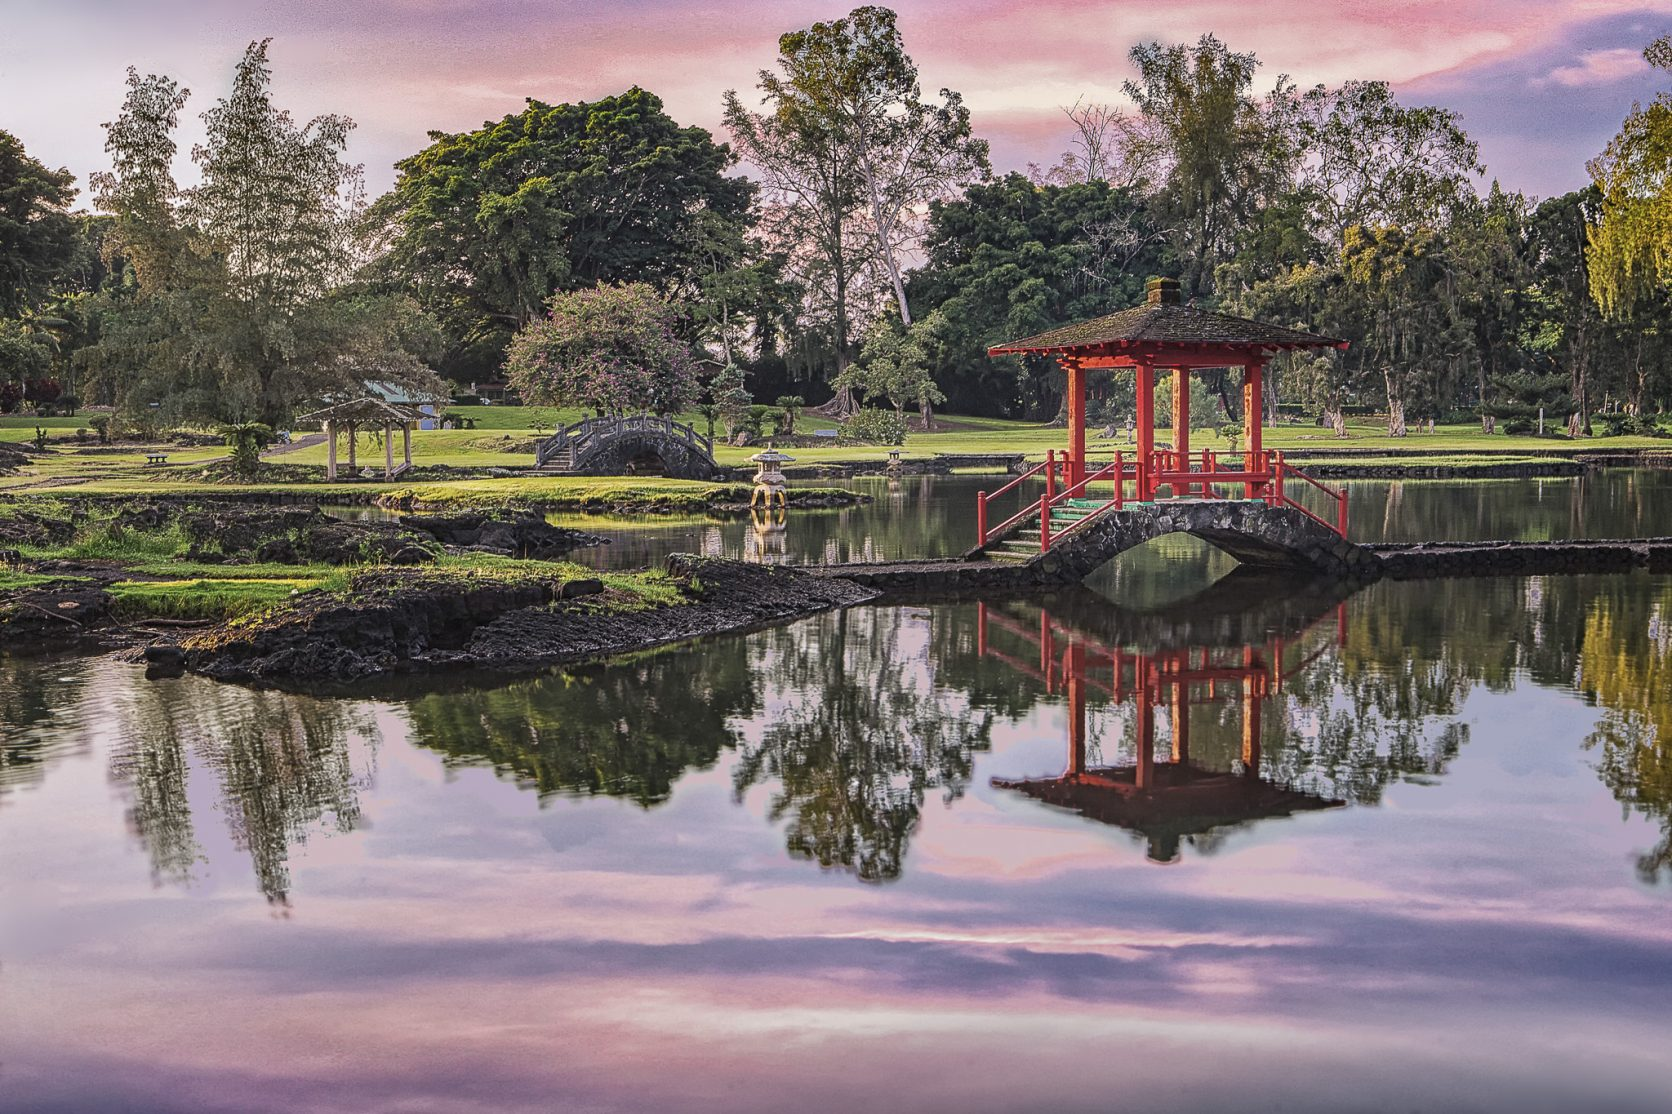 Liliuokalani Gardens  Hilo Big Island Hawaii Location big island photographer